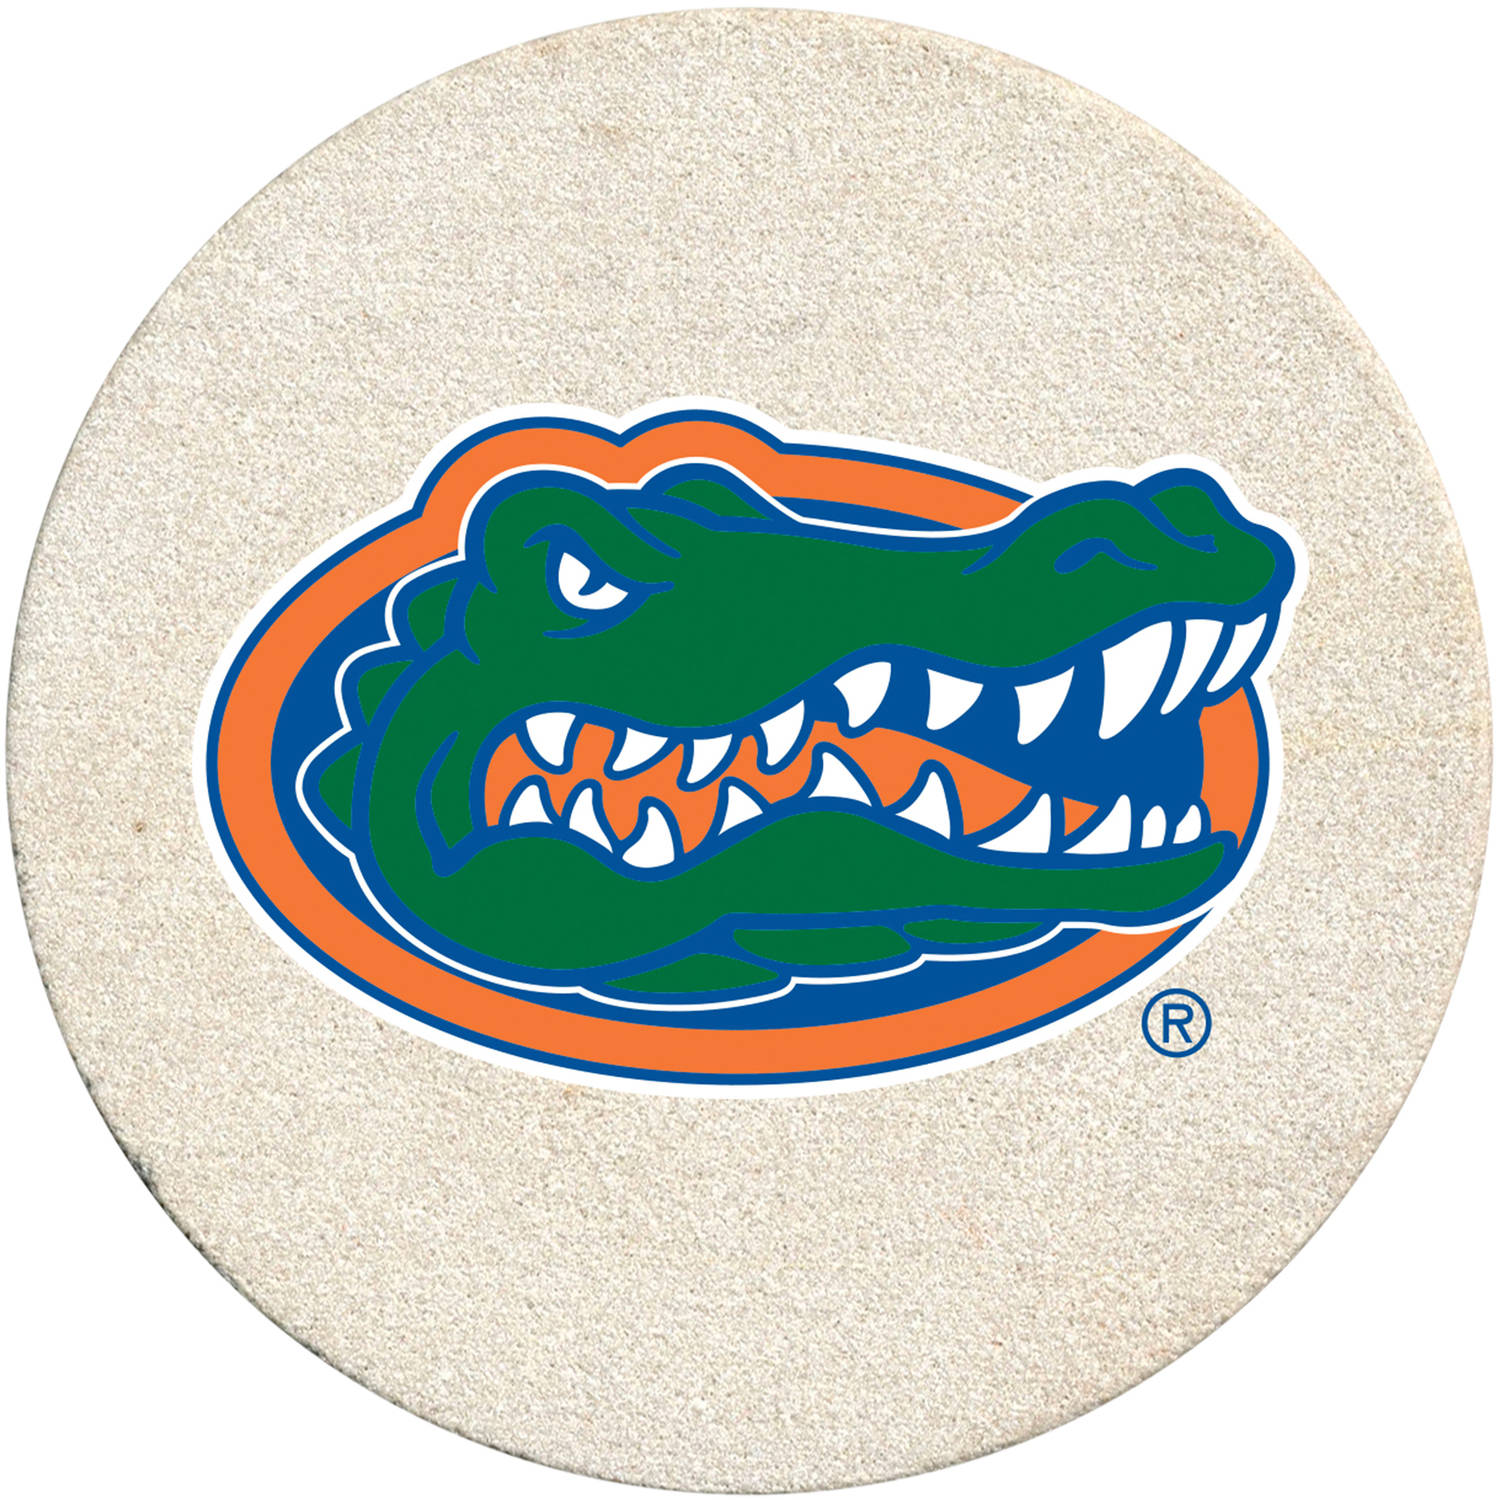 Thirstystone Drink Coaster Set, University of Florida